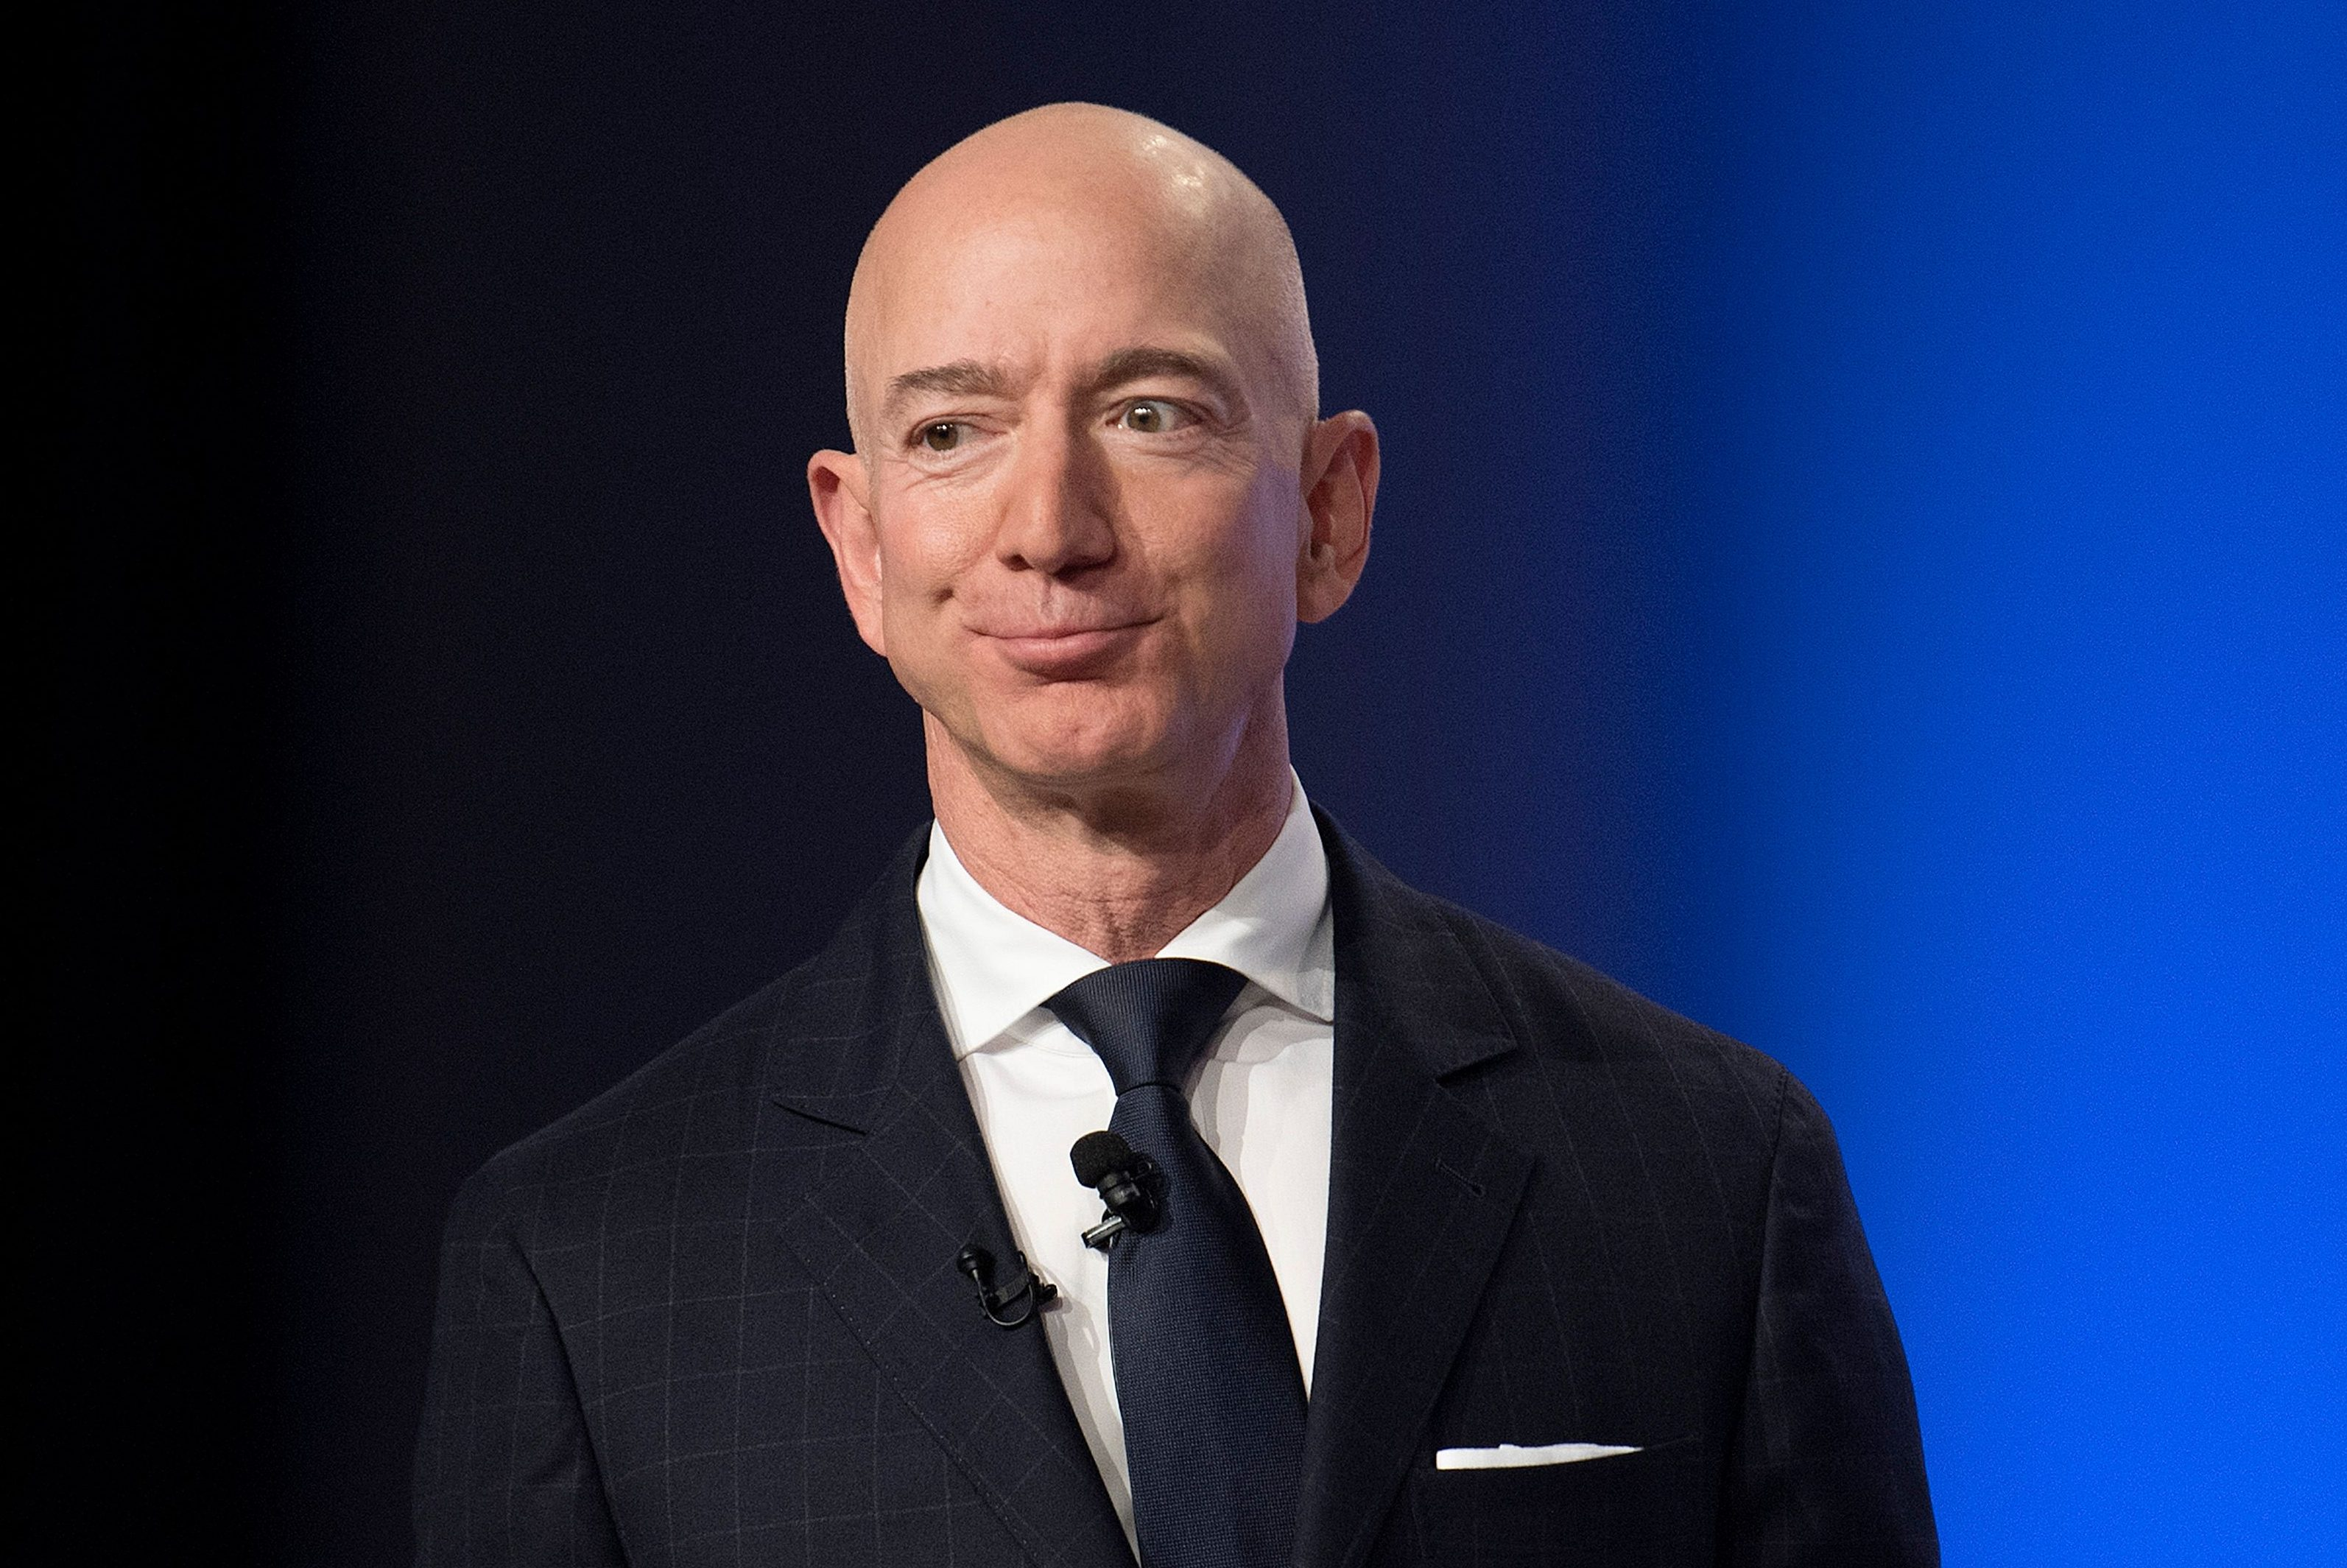 Jeff Bezos Reveals What He Plans to Do After Cashing Out $4 Billion of Amazon Stock